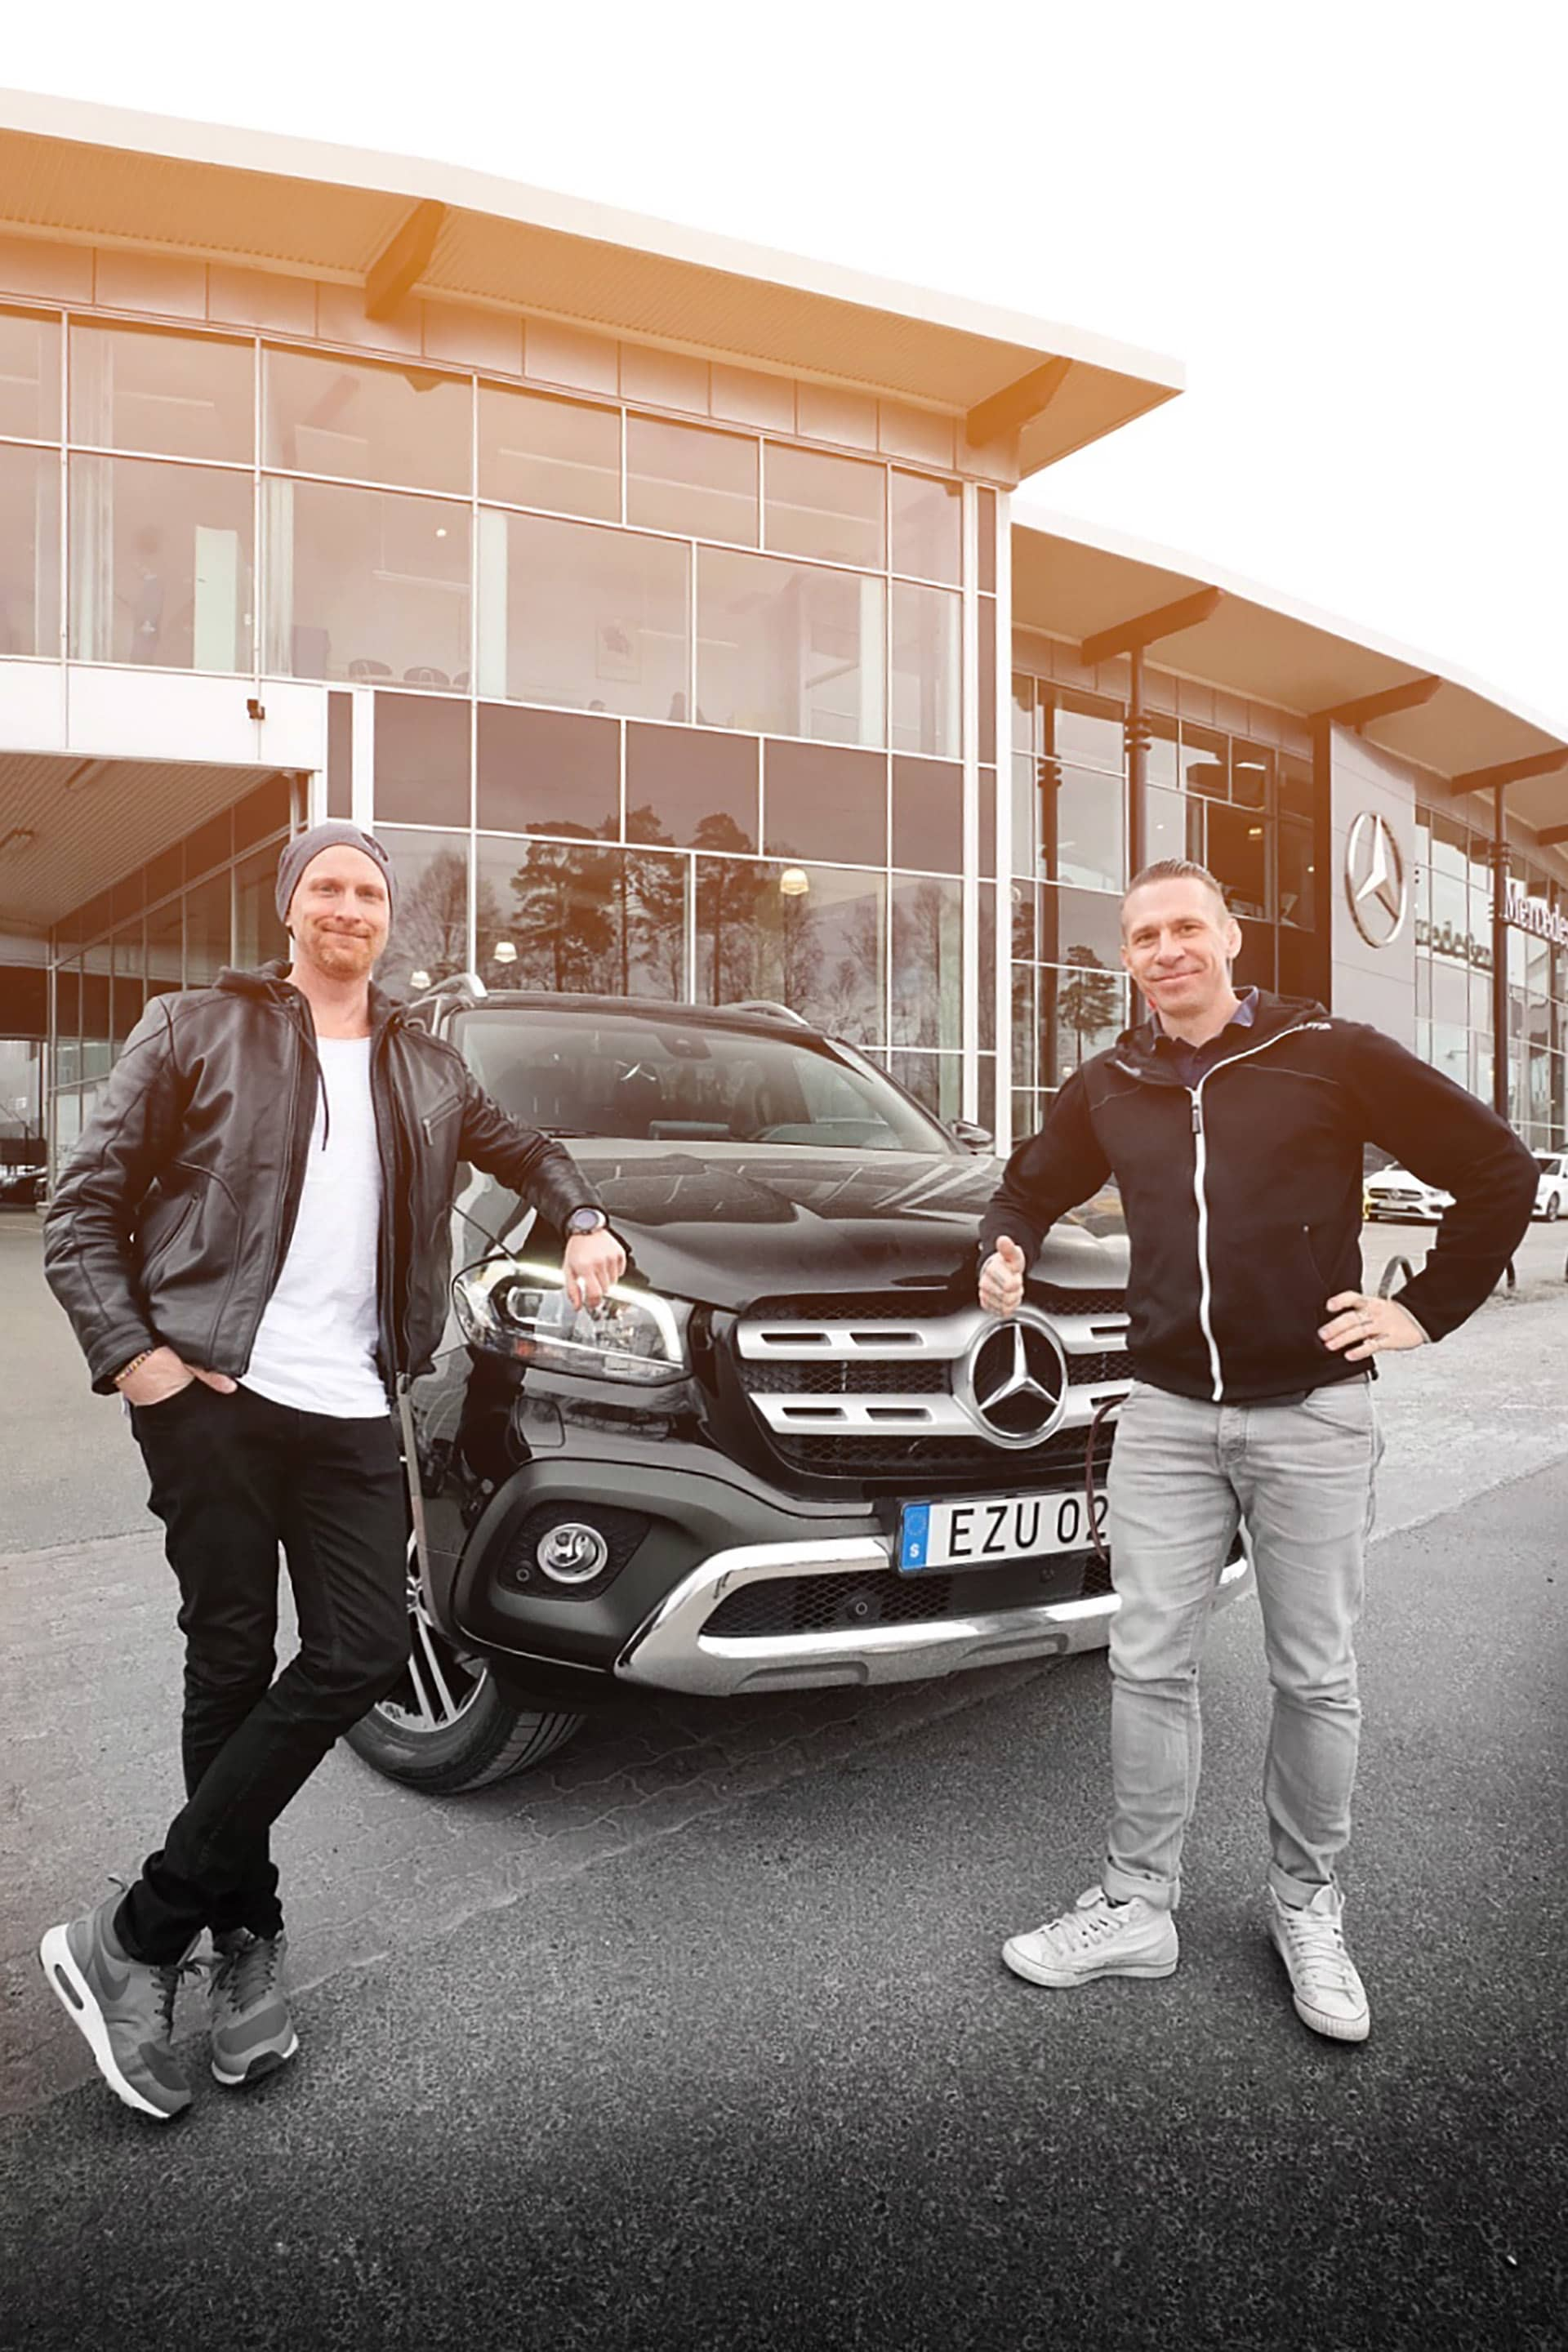 The delivery of my new X-Class was handled excellently by Sebastian Karlsson at Vehobil. That's when an era with Mercedes started.